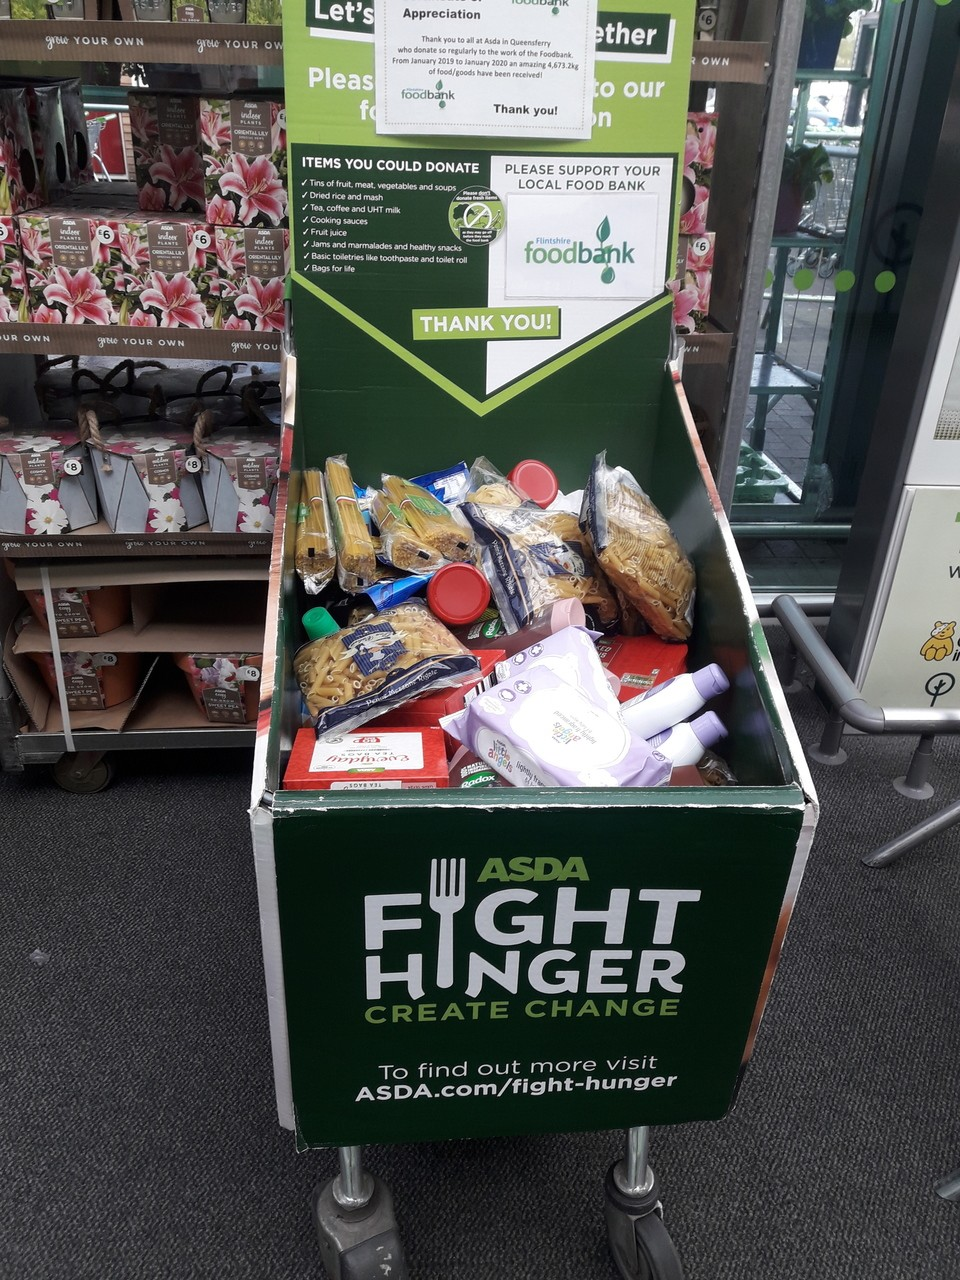 More donations for our local foodbank | Asda Queensferry